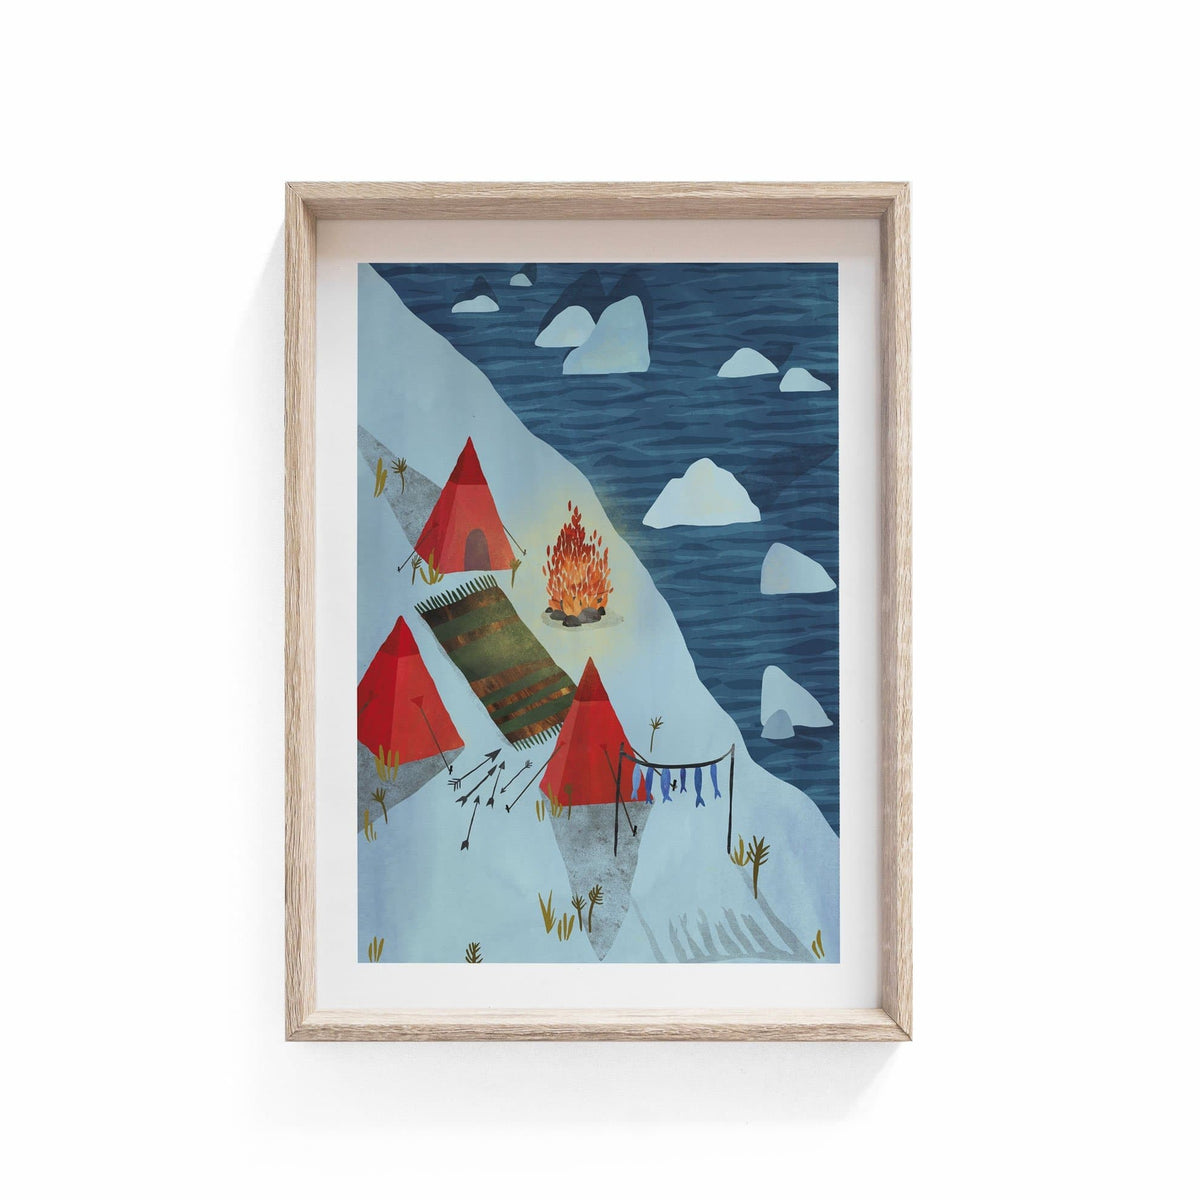 Arctic Illustration Print-Illustration-Hello Grimes-A3-Totem Store